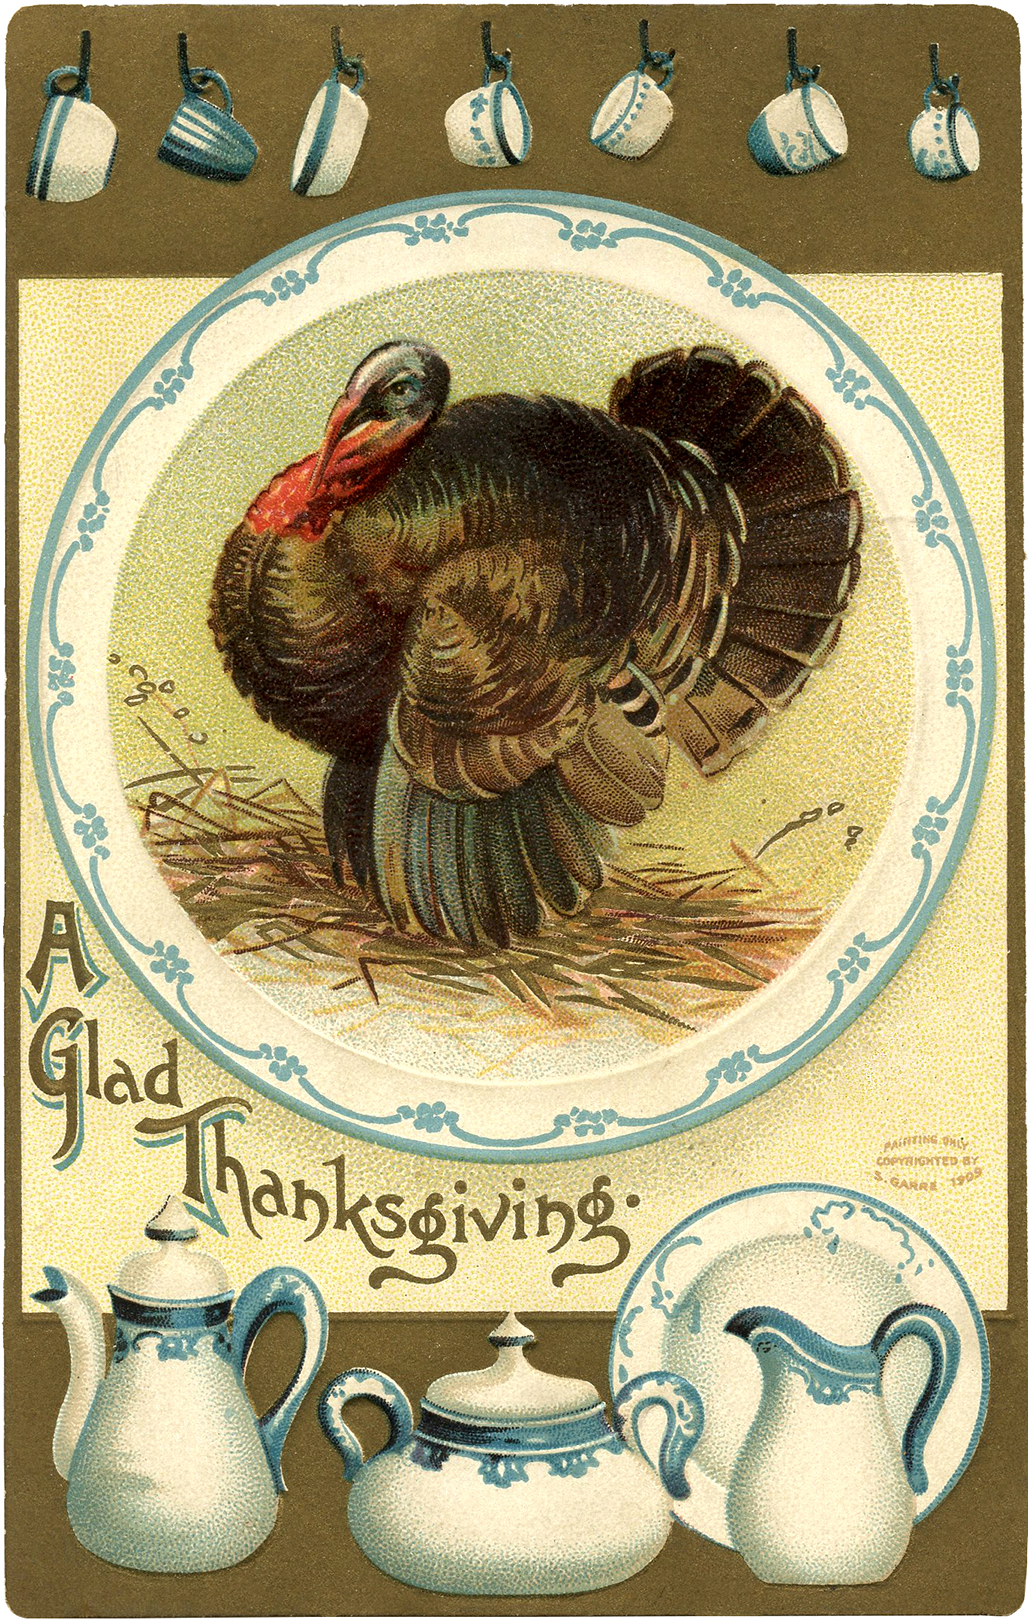 Fall Plate Wallpaper Vintage Thanksgiving Turkey Image The Graphics Fairy